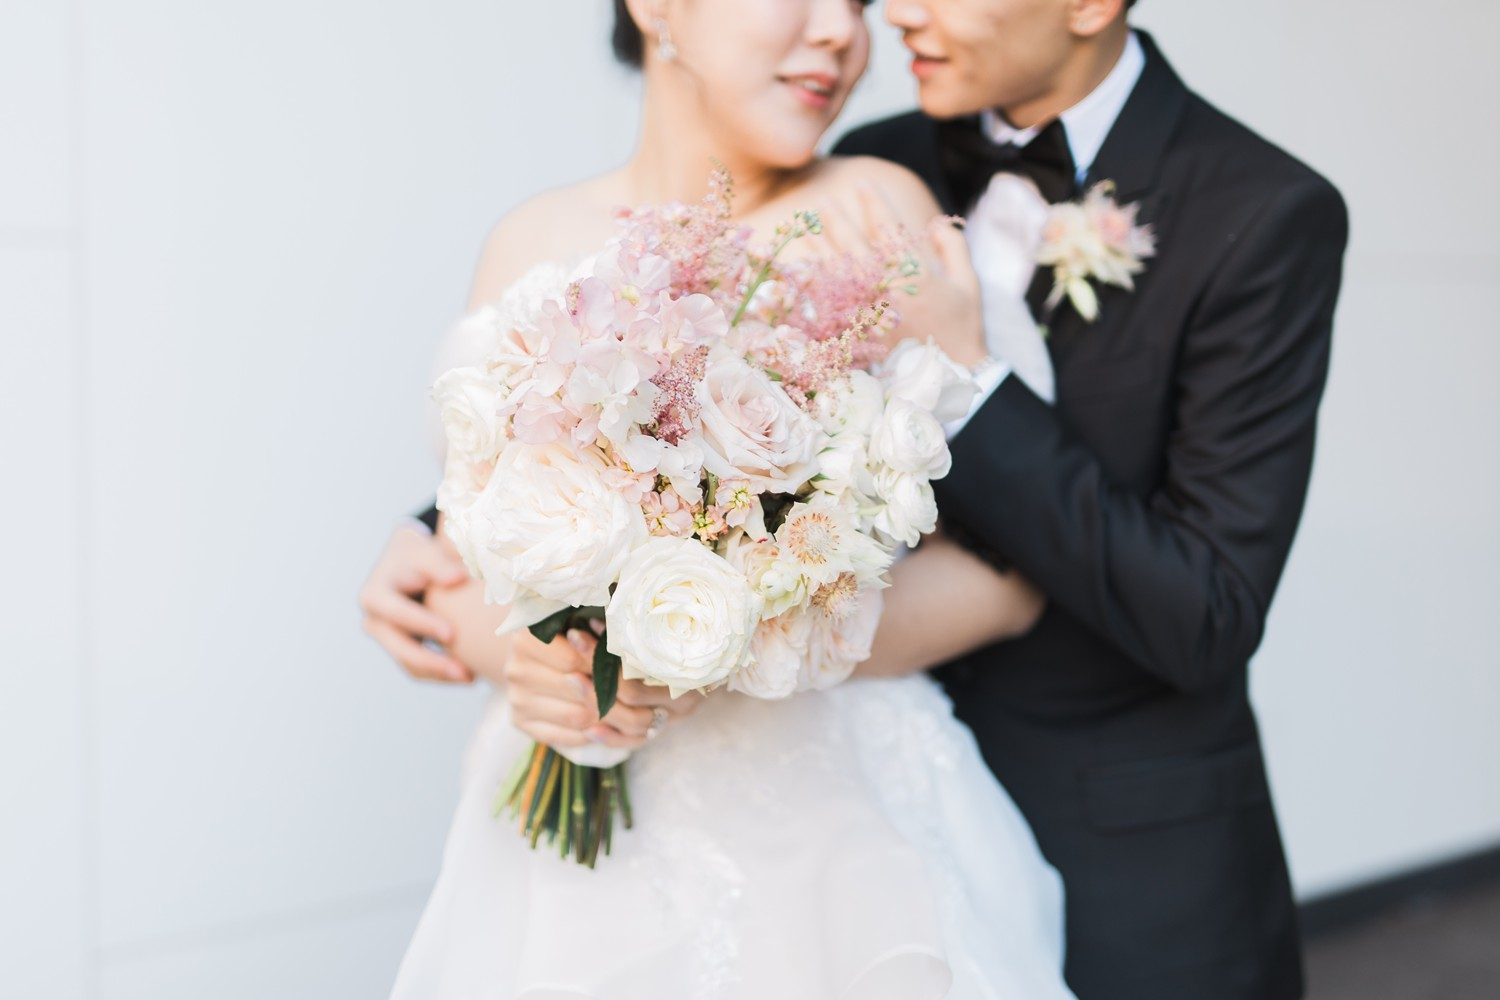 Wedding Portraits at Luxury Yorkville Vinci Toronto Four Season Hotel Wedding Photos with Chinese Bride and Groom